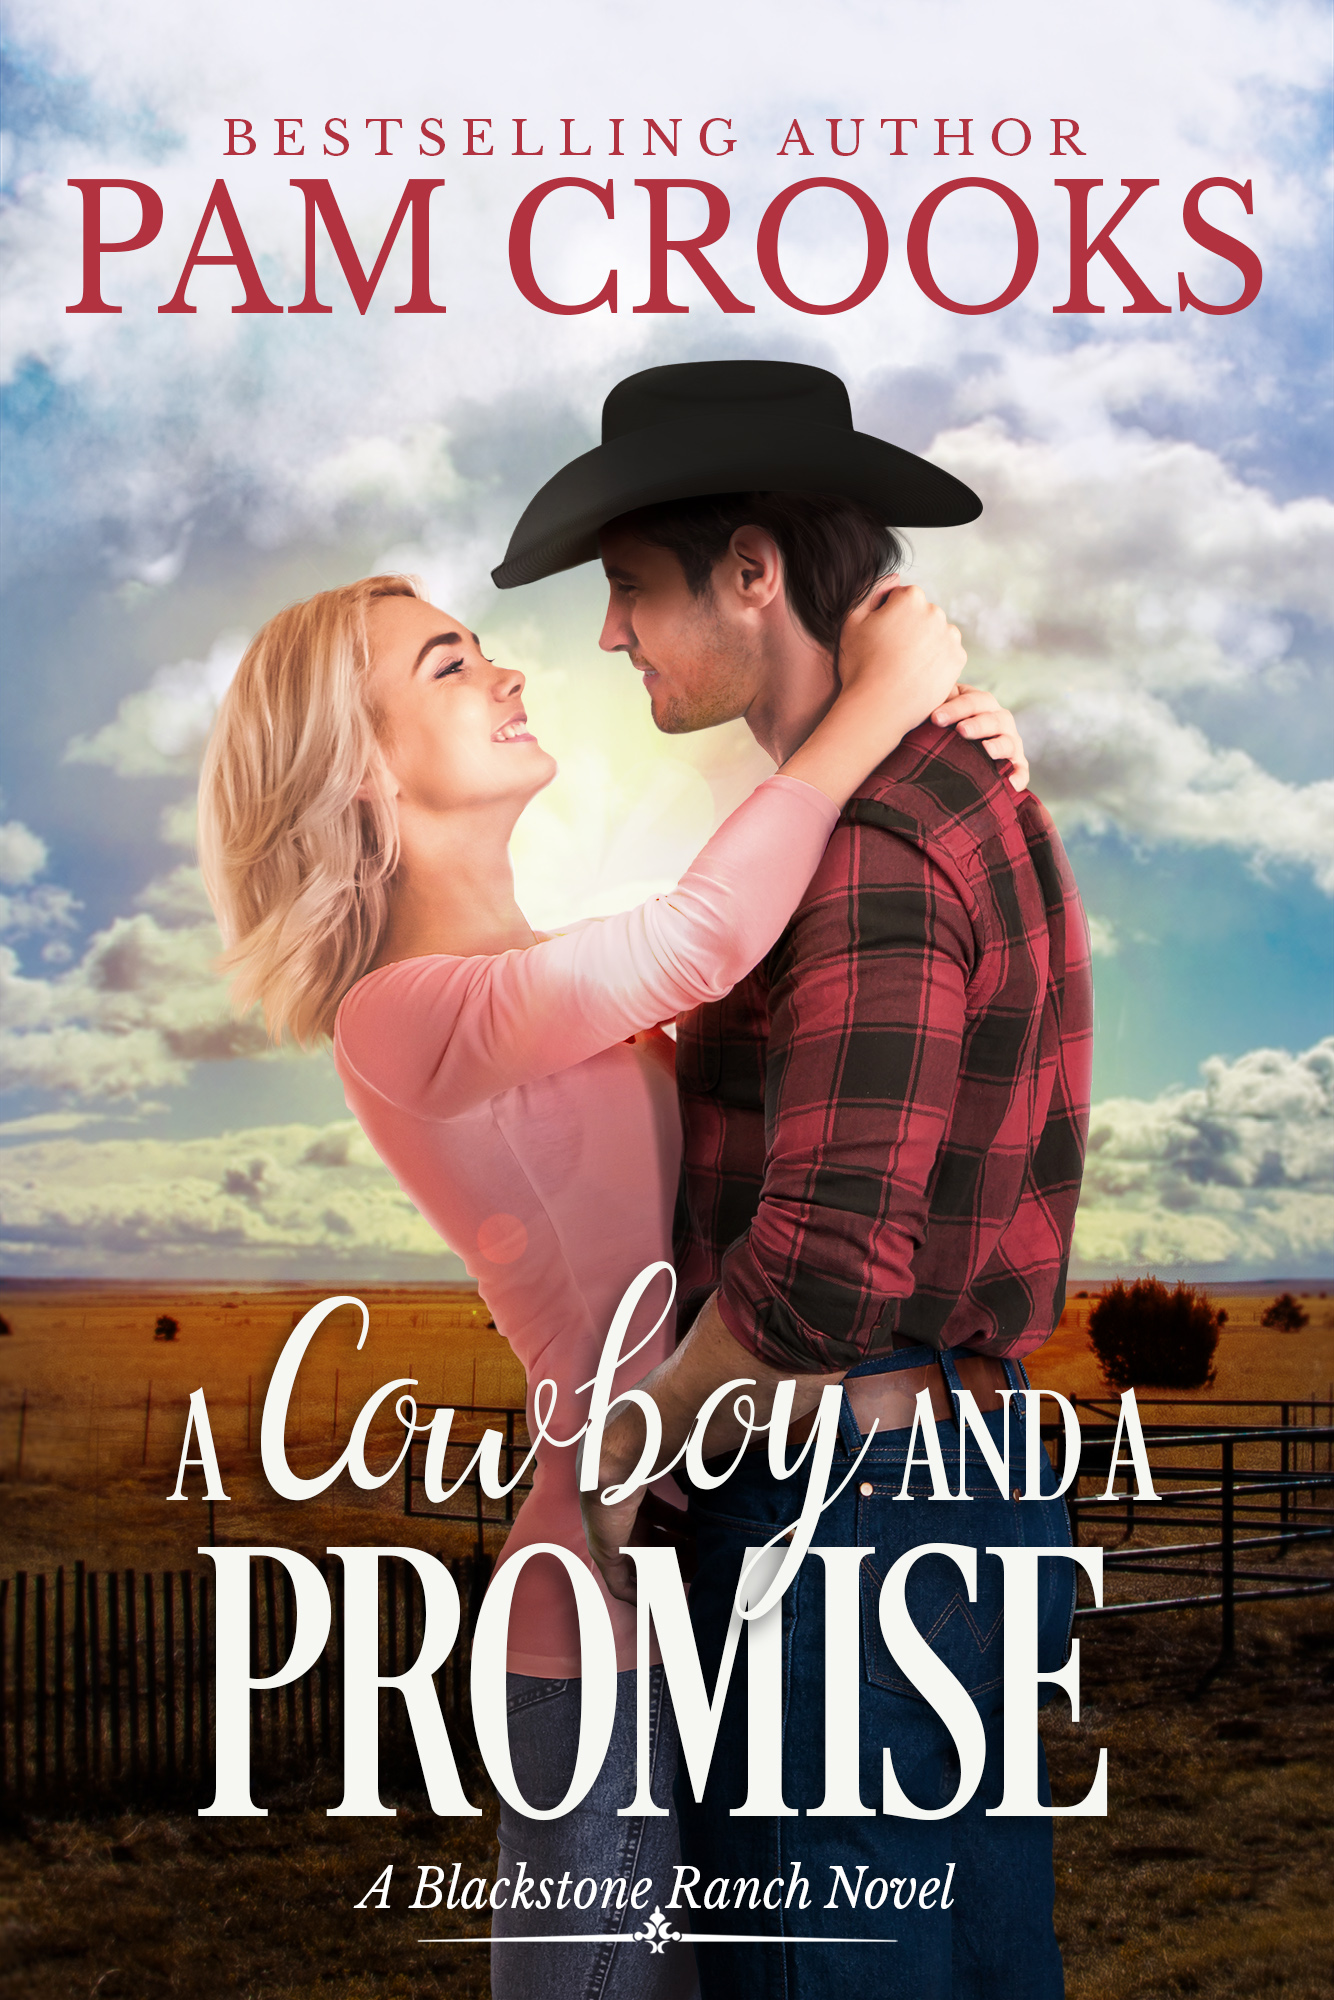 A Cowboy and a Promise final for Barnes